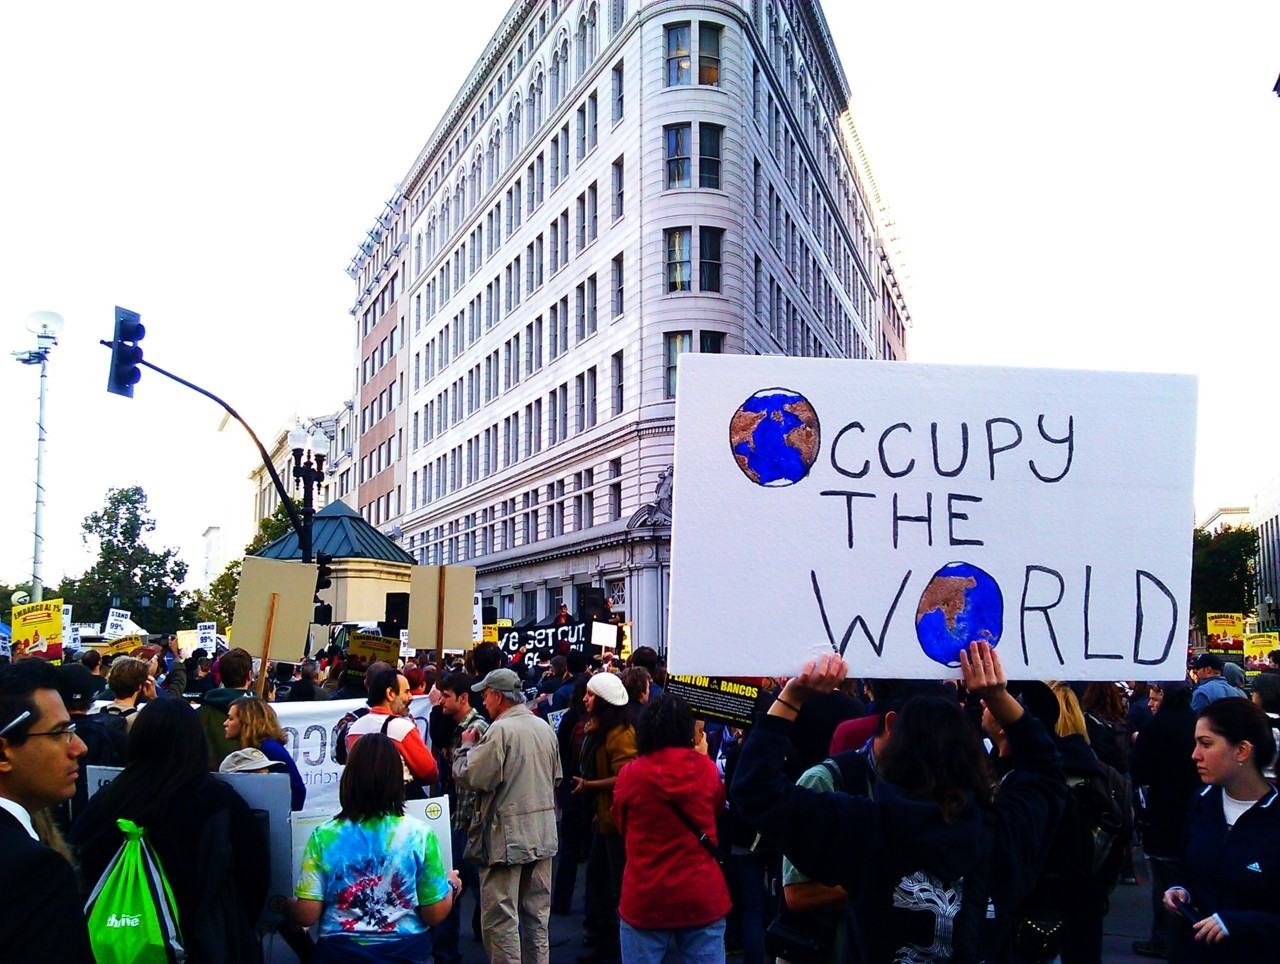 My colleagues and I have been covering the Occupy Oakland general strike since the vote last week. I took this photo this morning around 930am when around 800 or so protesters were arriving. Now the crowds have swelled to around 5K. Check out the Turnstyle News' archive and coverage. I'm managing the intake.  Also follow the twitter account for minute-to-minute updates. I'm tweetin' like crazy!